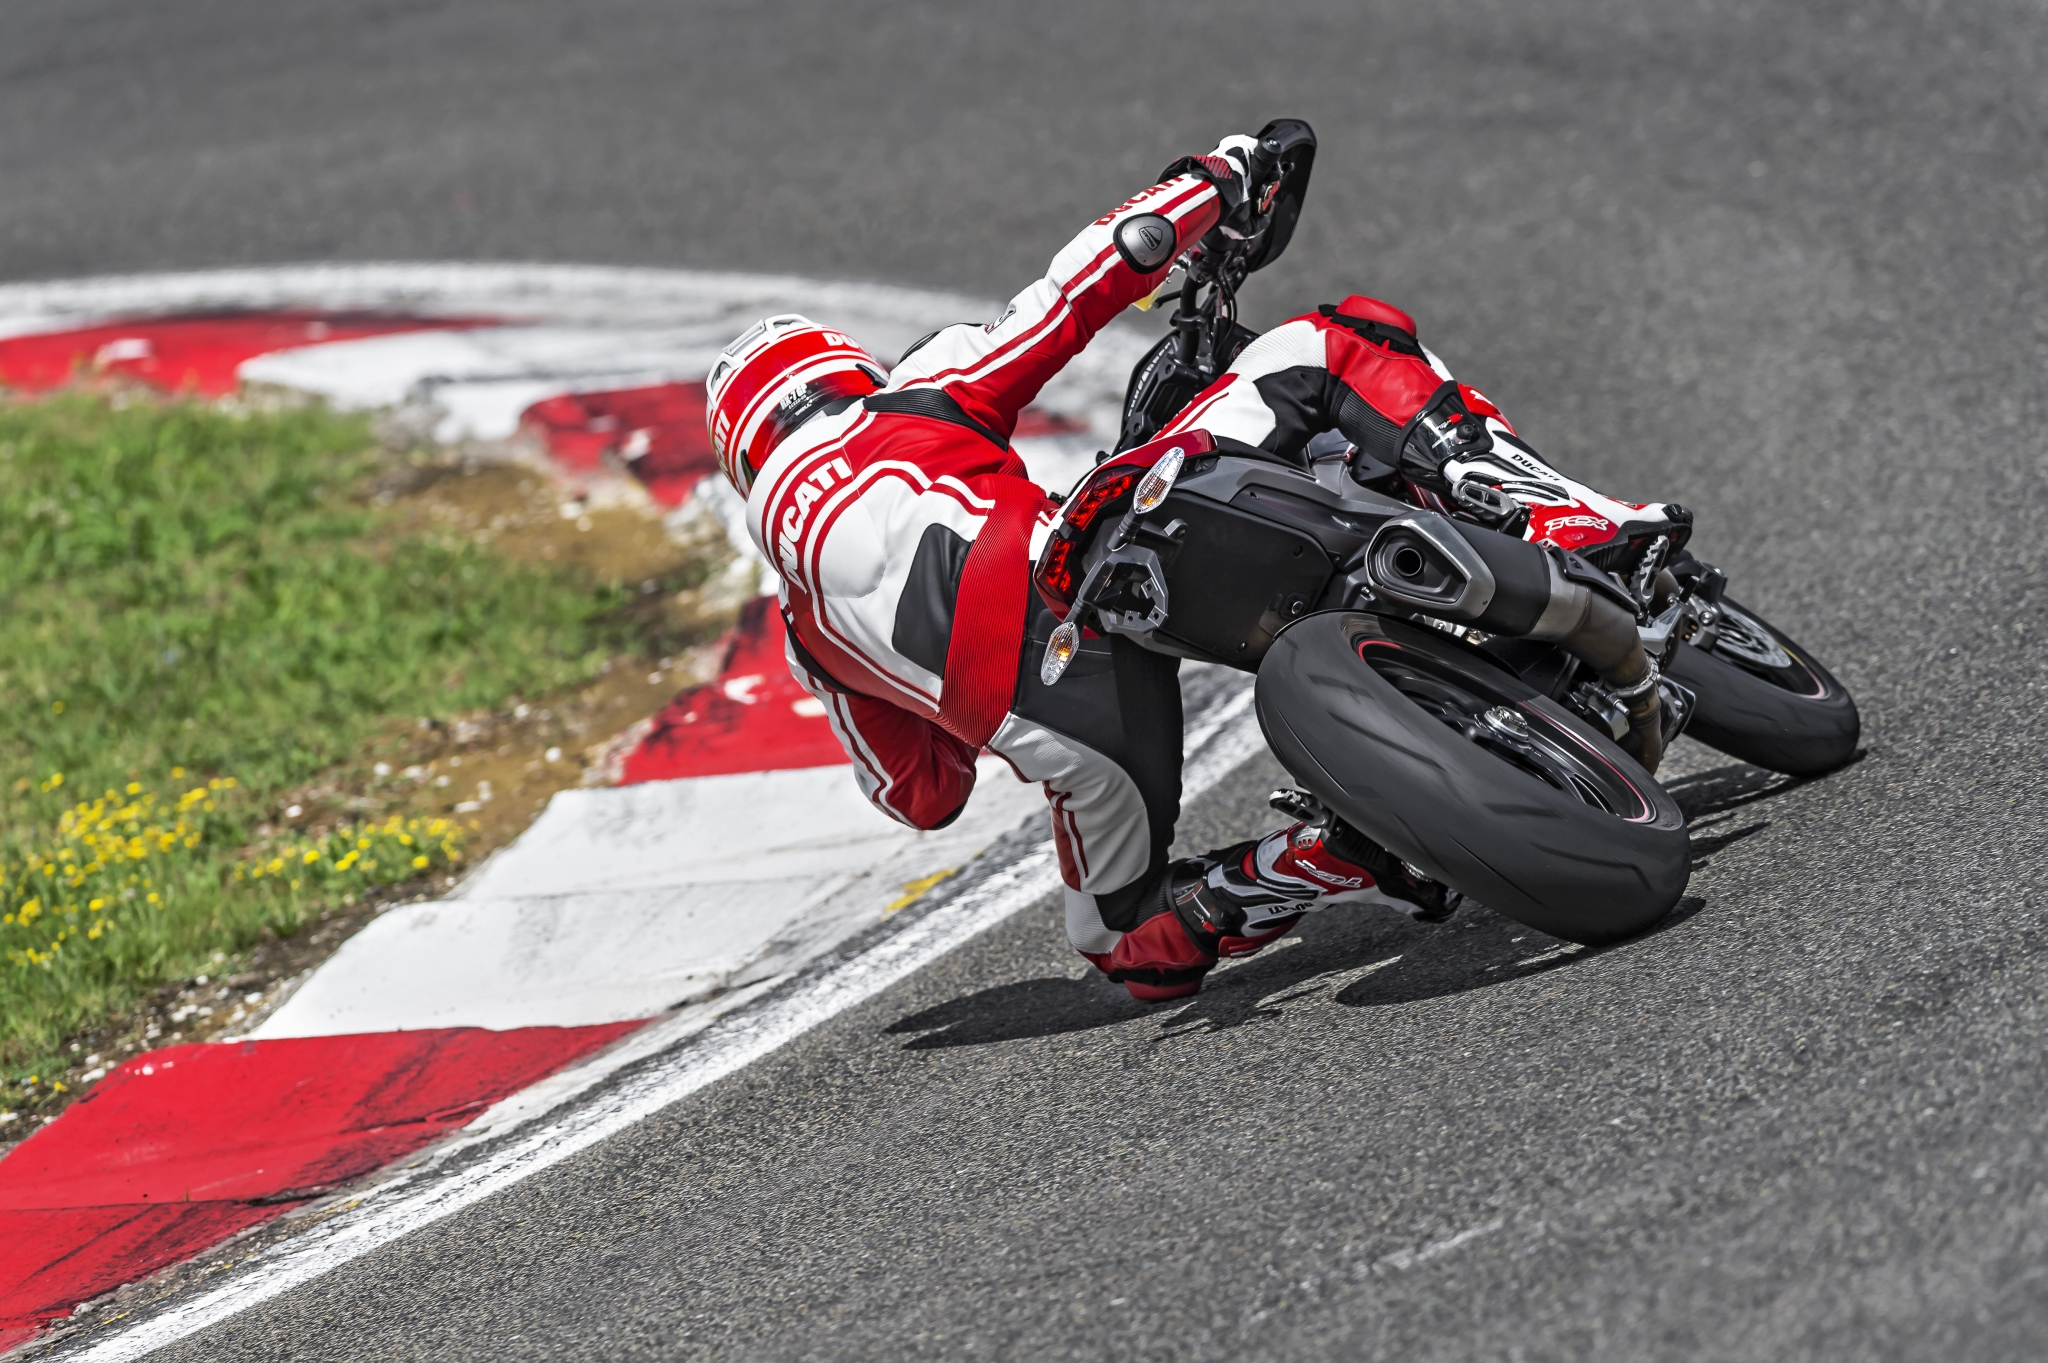 Ducati Hypermotard SP images #79651